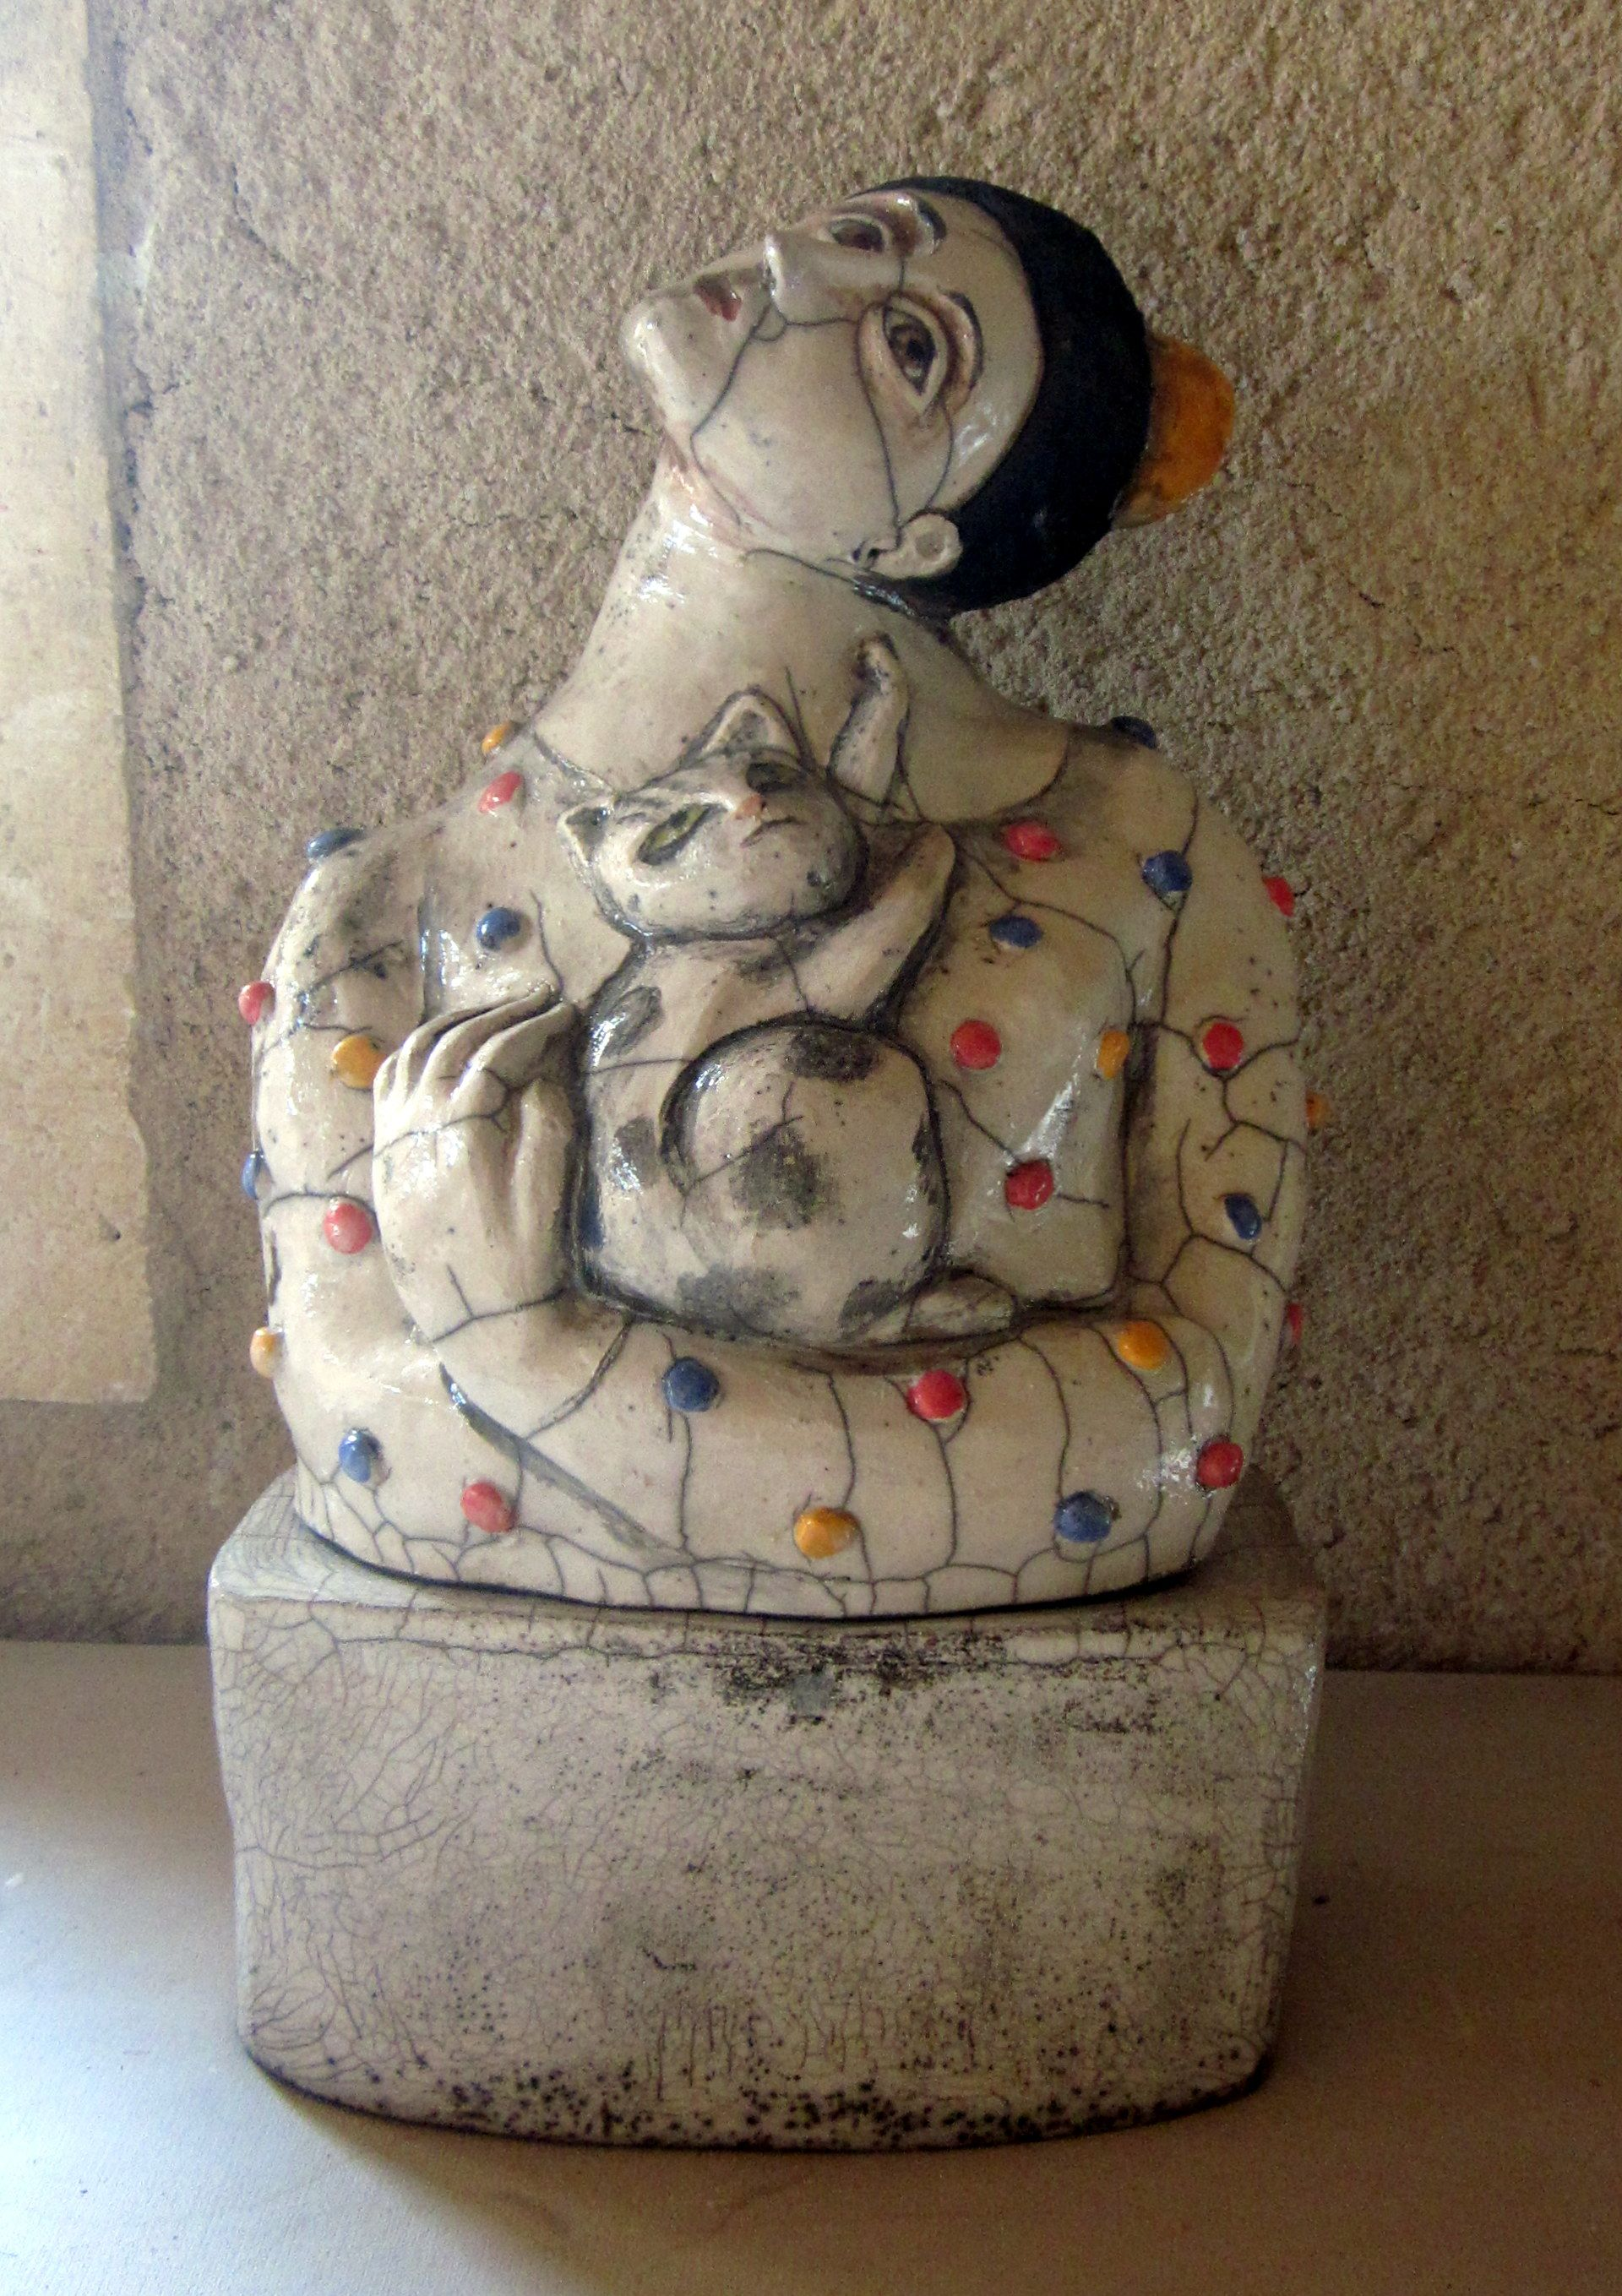 Lady with a kitten. Raku sculpture by Jessie Mooy